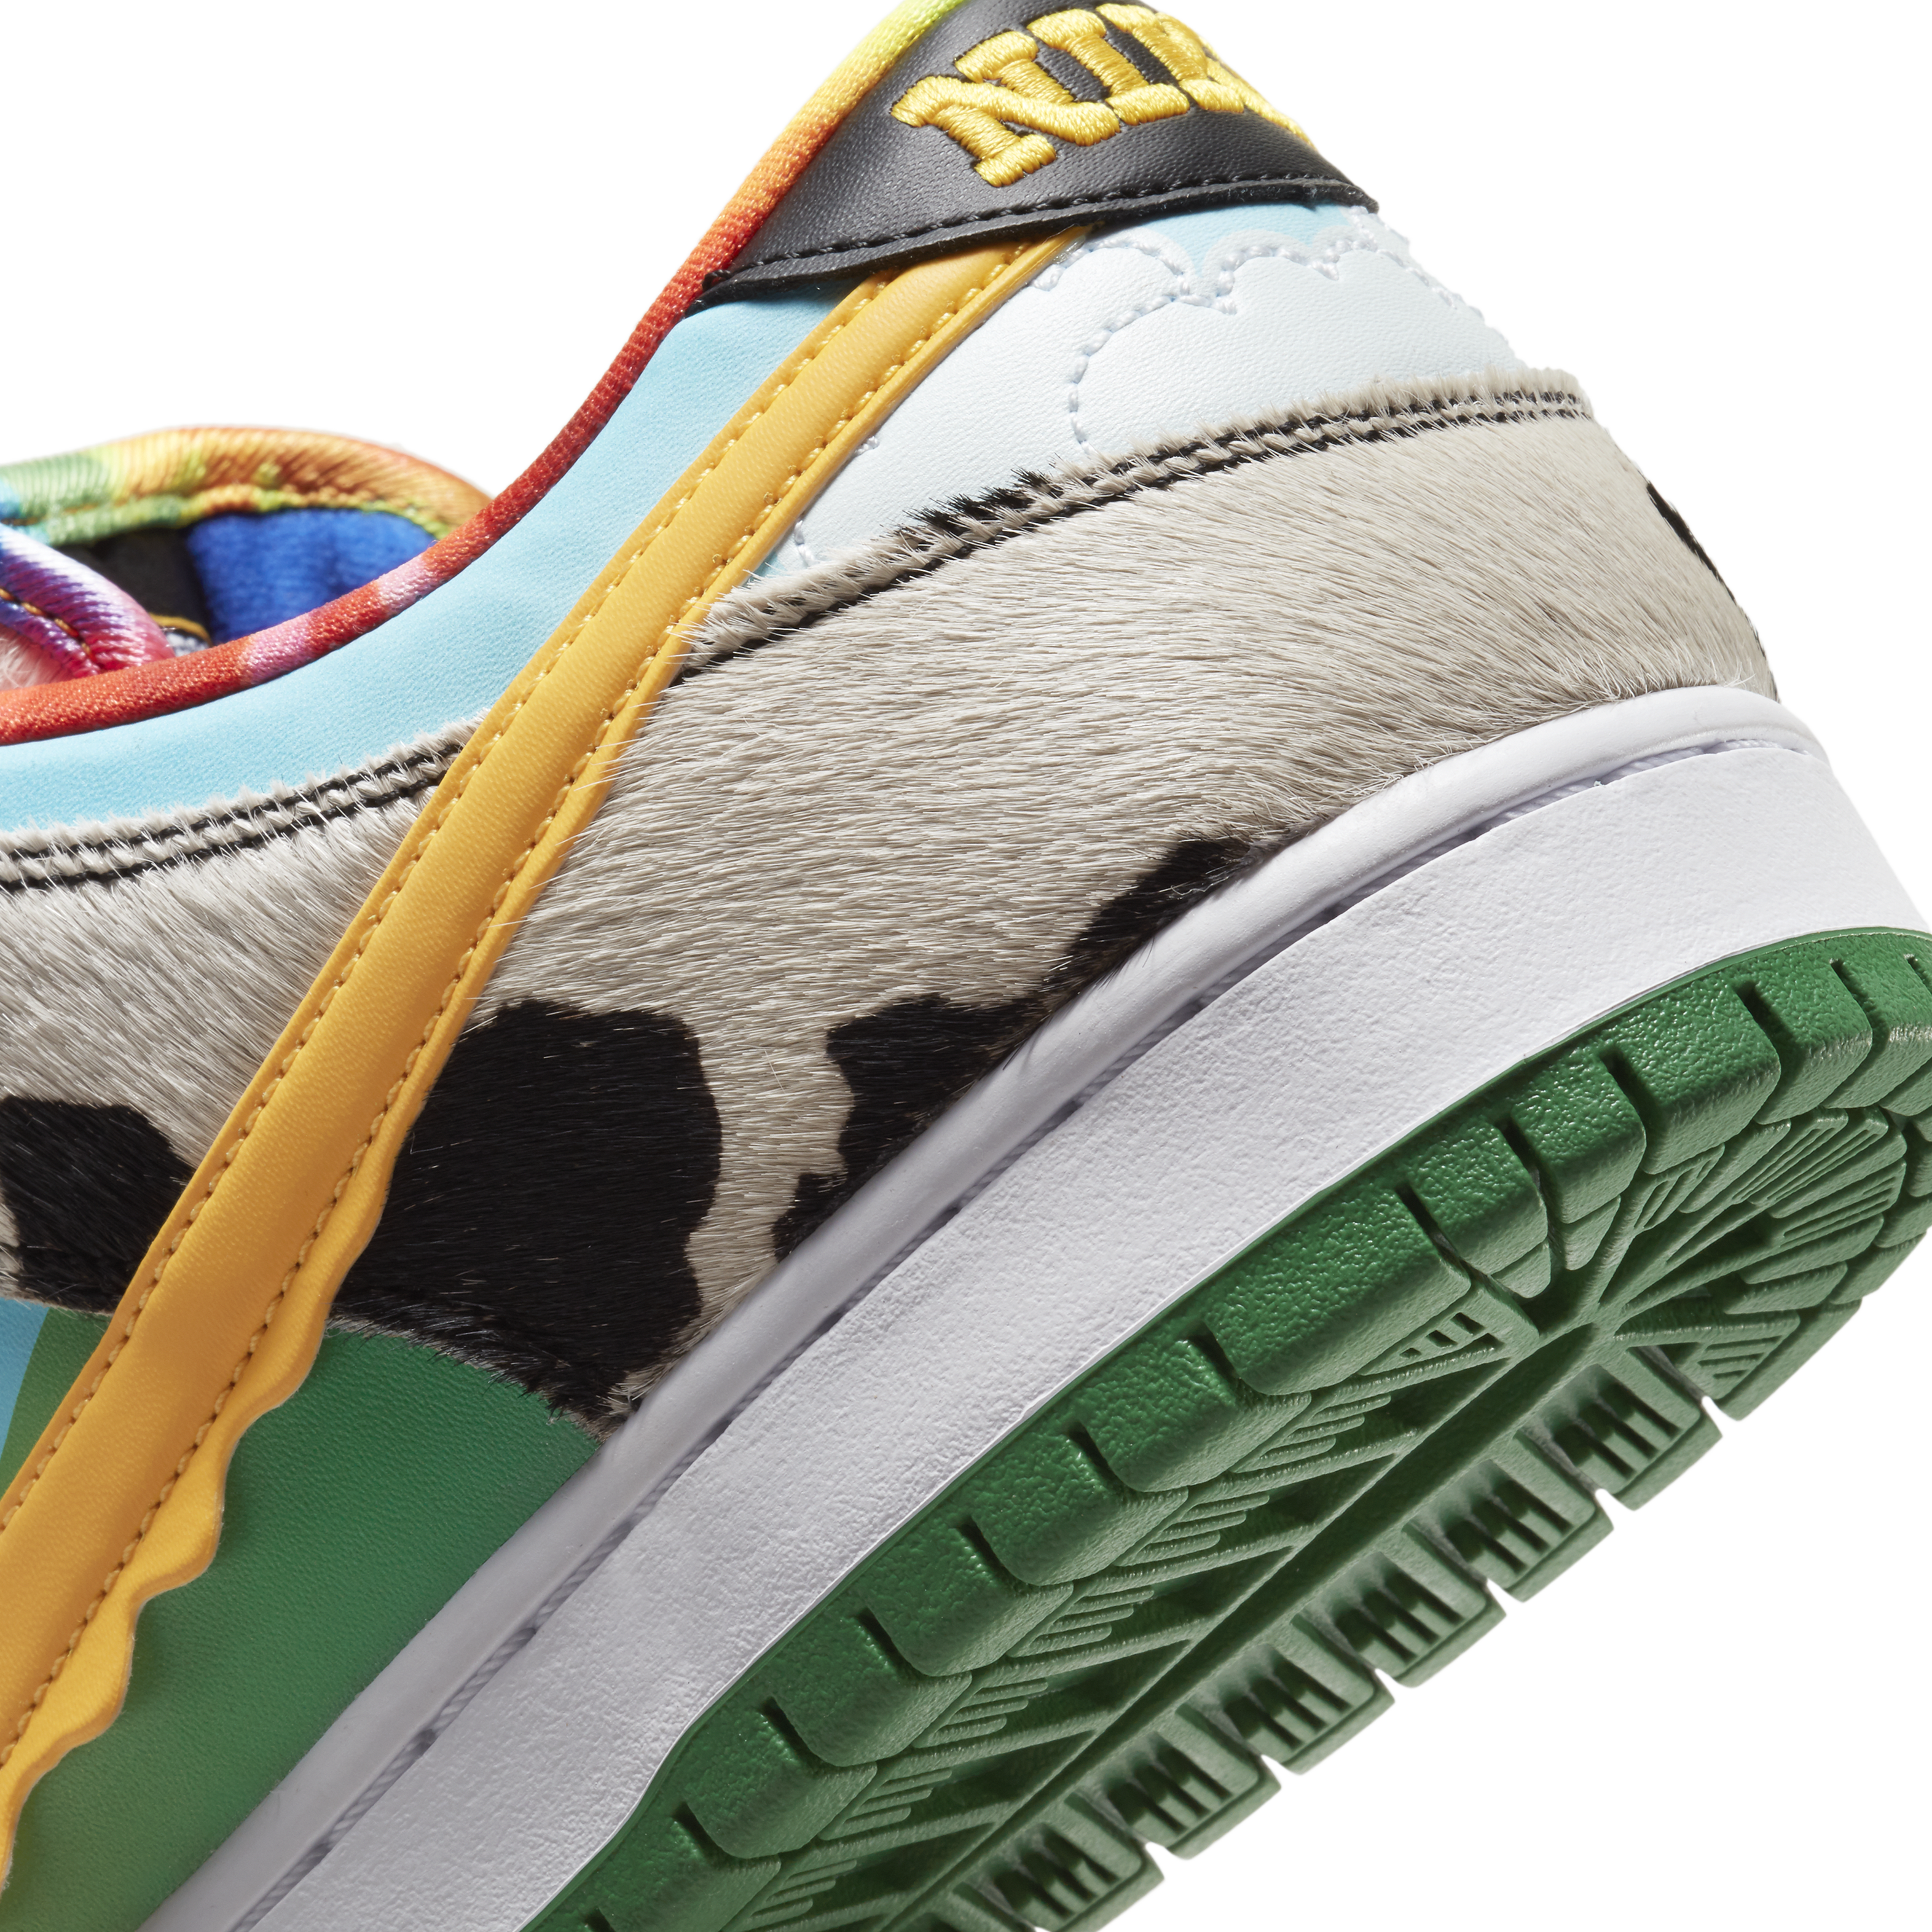 Ben and Jerry's x Nike SB Dunk Low 'Chunky Dunky' CU3244-100 (Heel Detail)